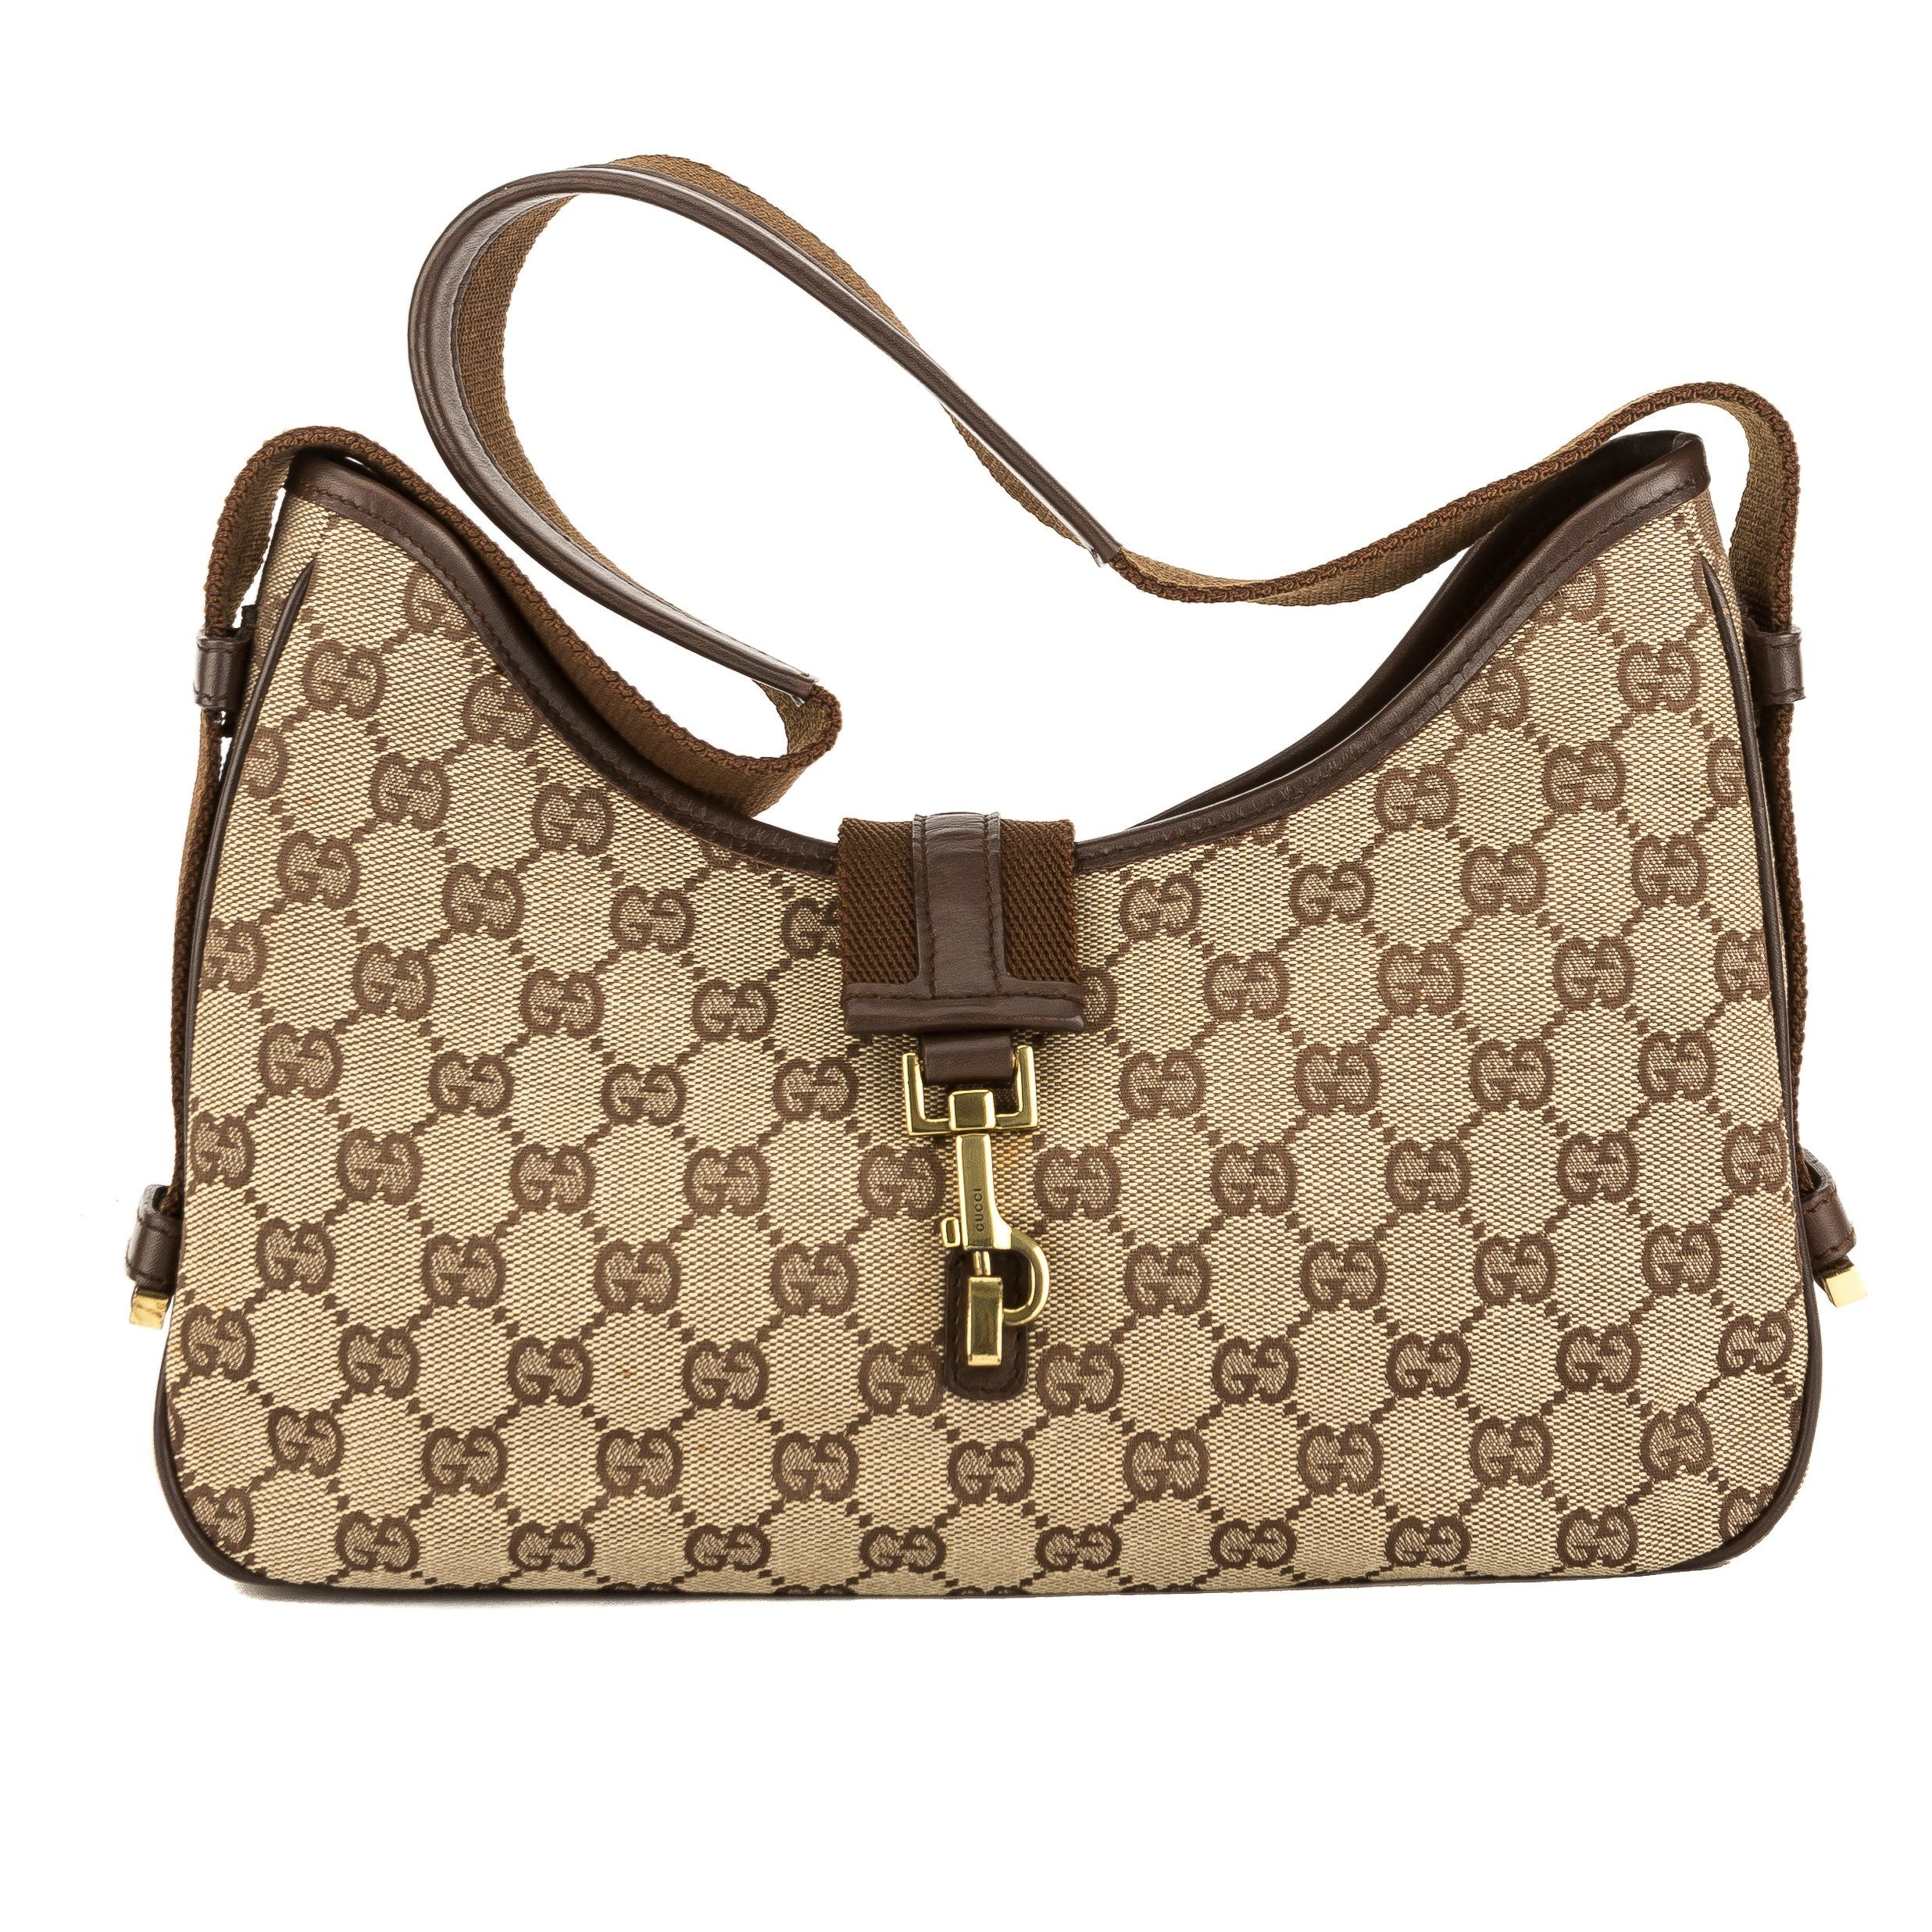 8be208668e1 Gucci Brown Leather GG Monogram Canvas Bag (Pre Owned)